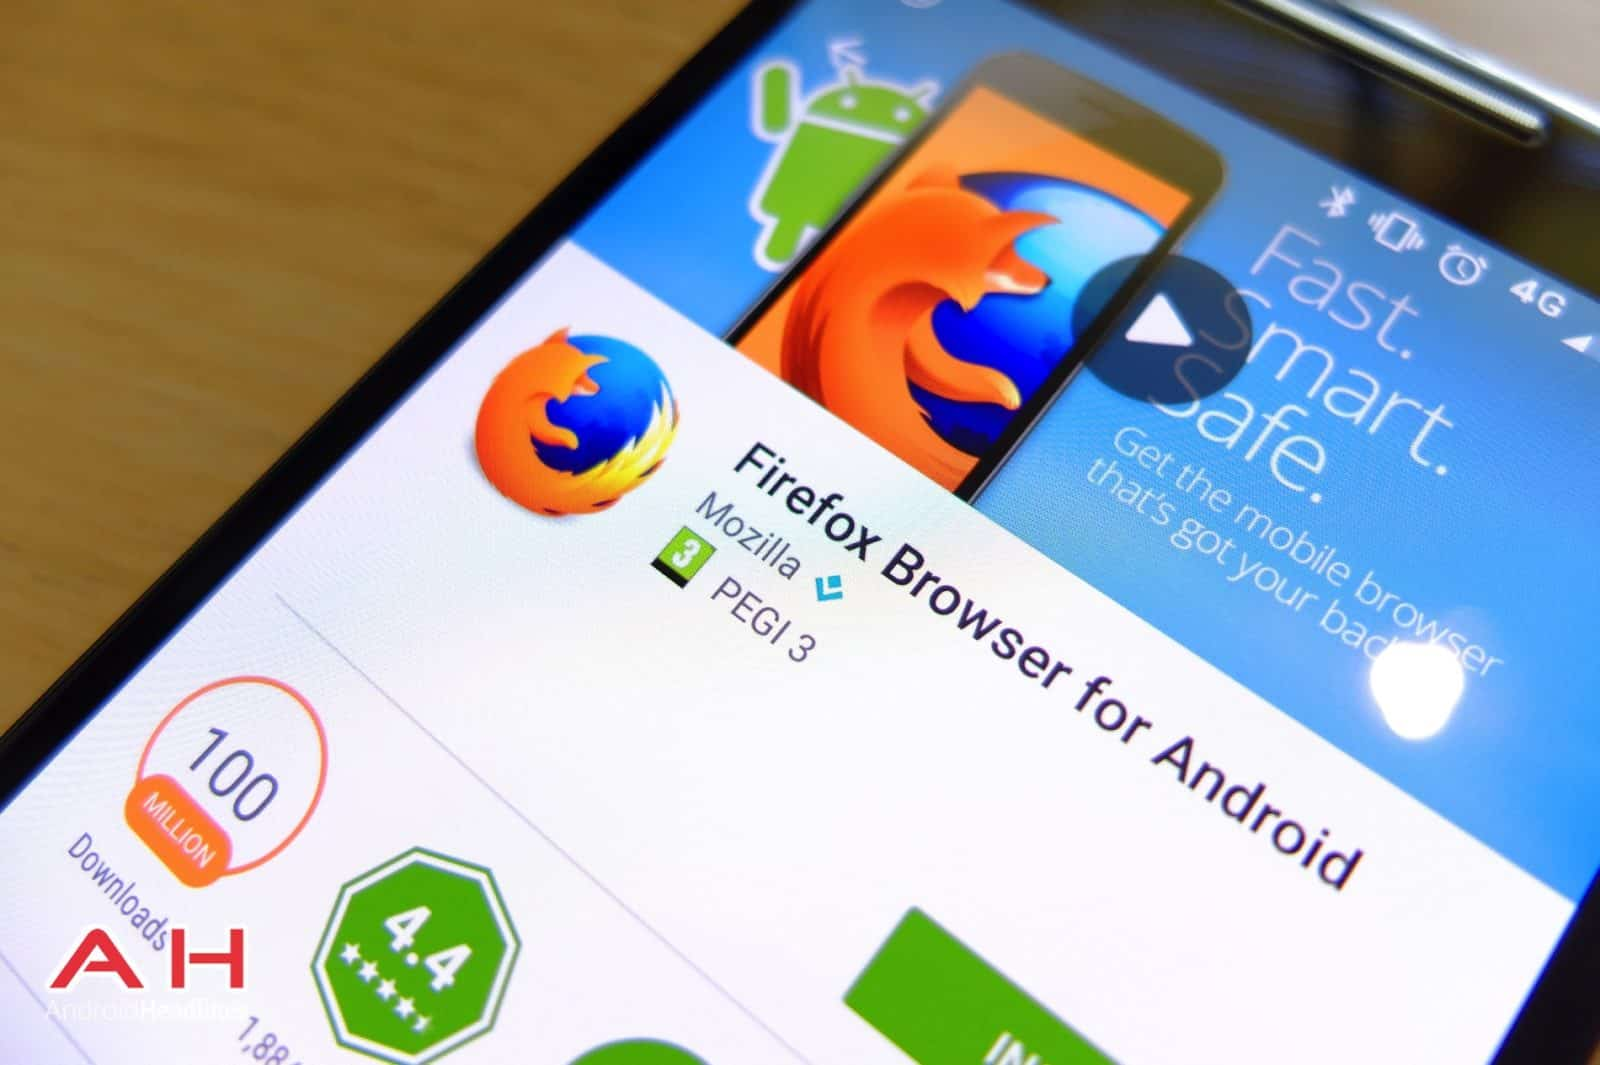 firefox adds progressive web apps in the version 58 beta androidheadlines